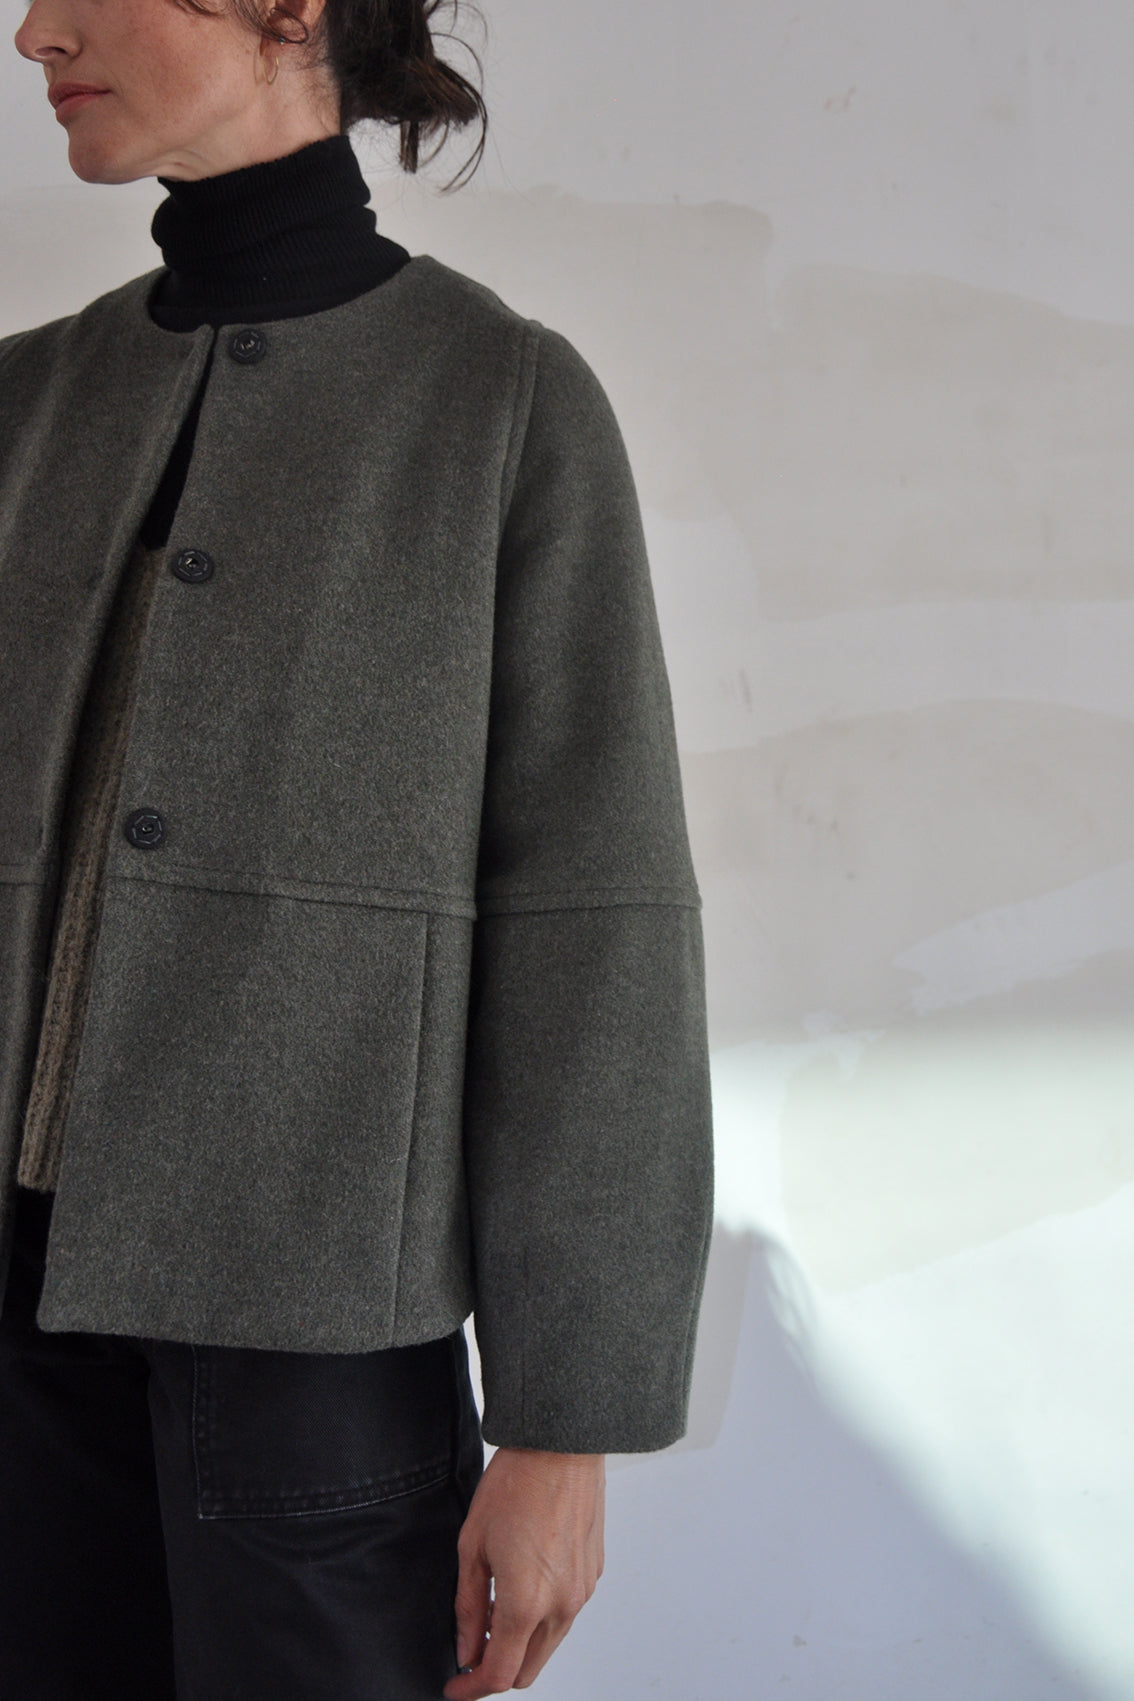 Rounded Wool Jacket – Musgo